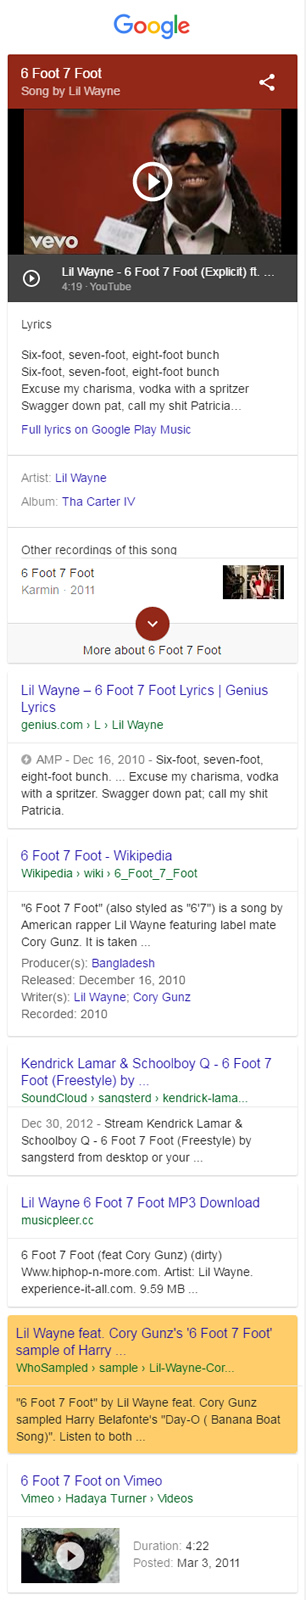 Previous ranking for whosampled 6 foot 7 foot.